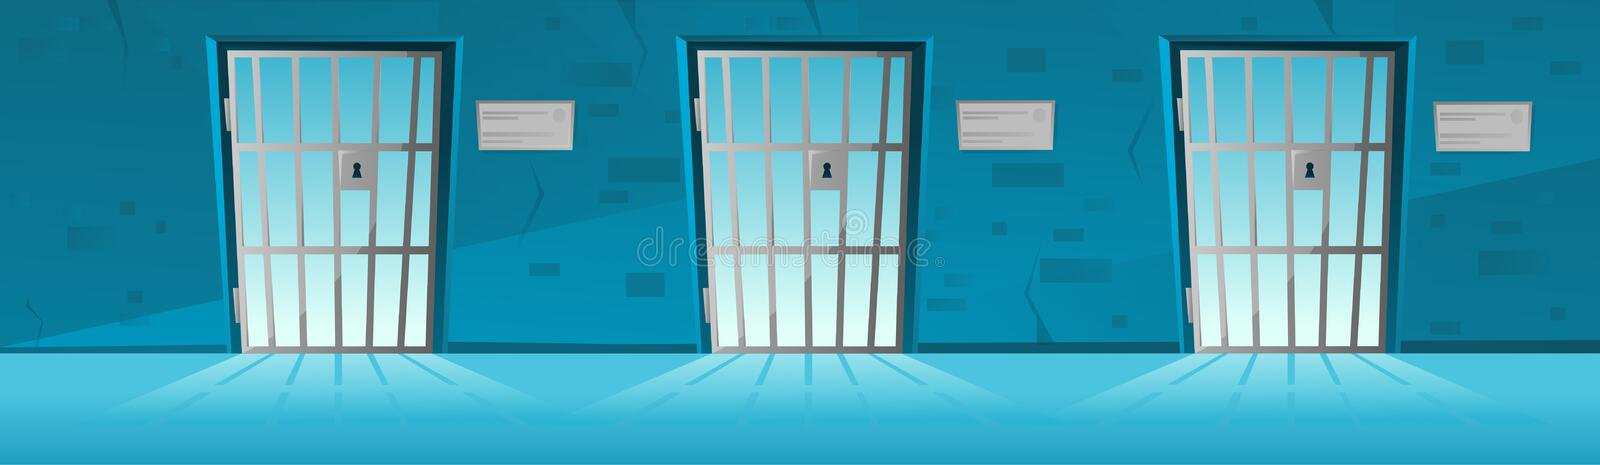 Jail corridor with Grid door in cartoon style.Hallway prison cell interior with lattice. Cartoon vector stock illustration